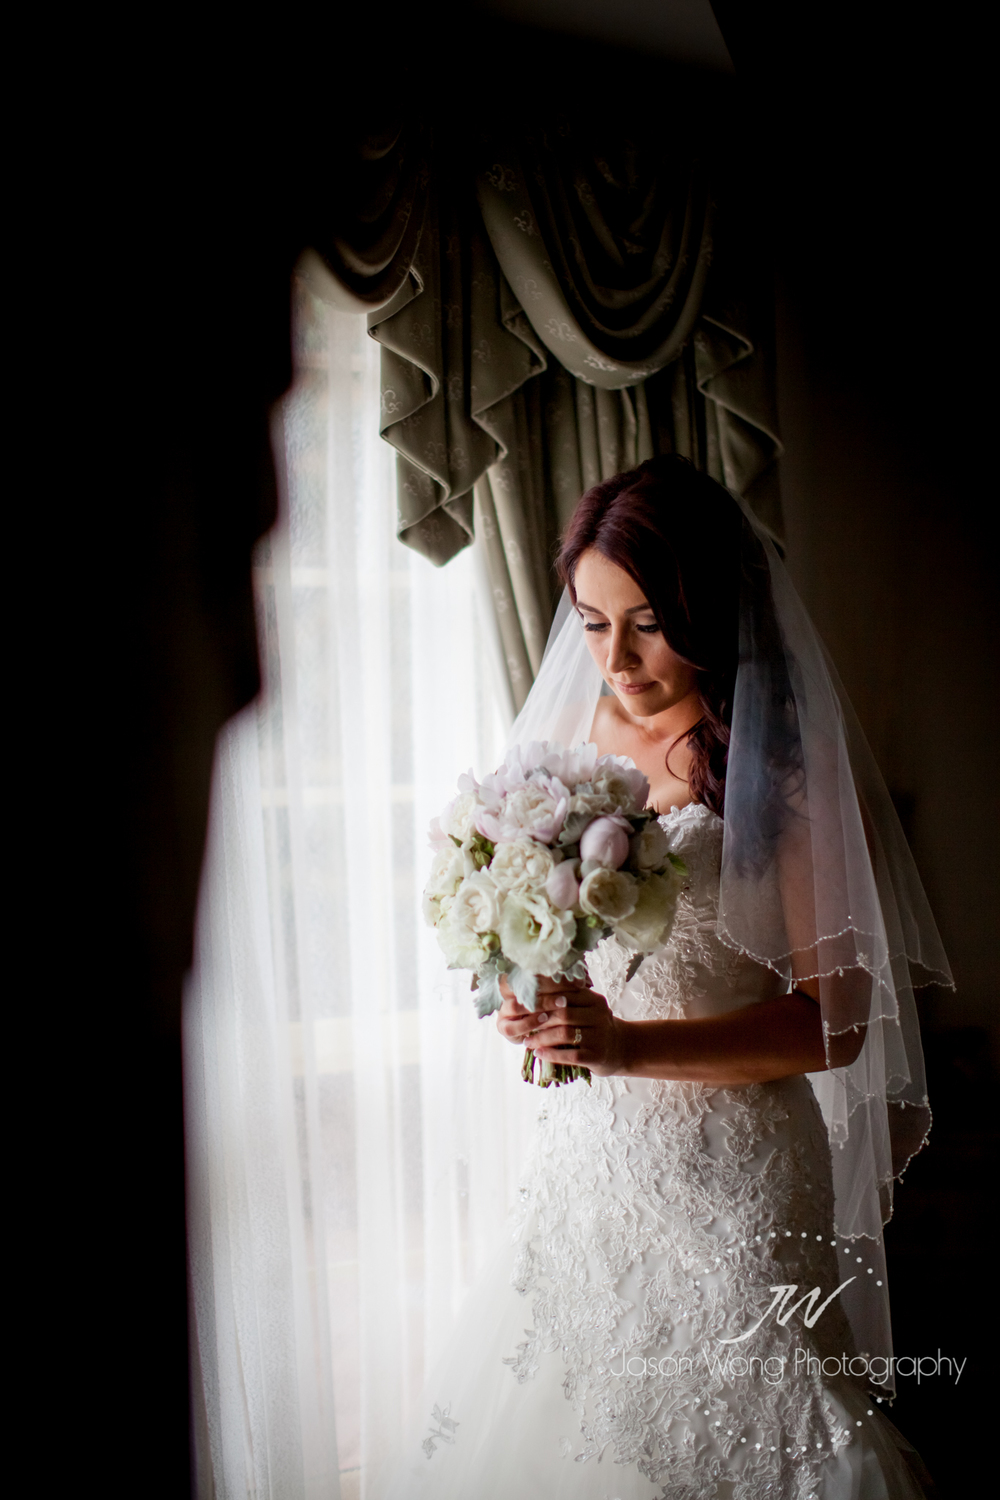 bride-having-a-deep-thought.jpg